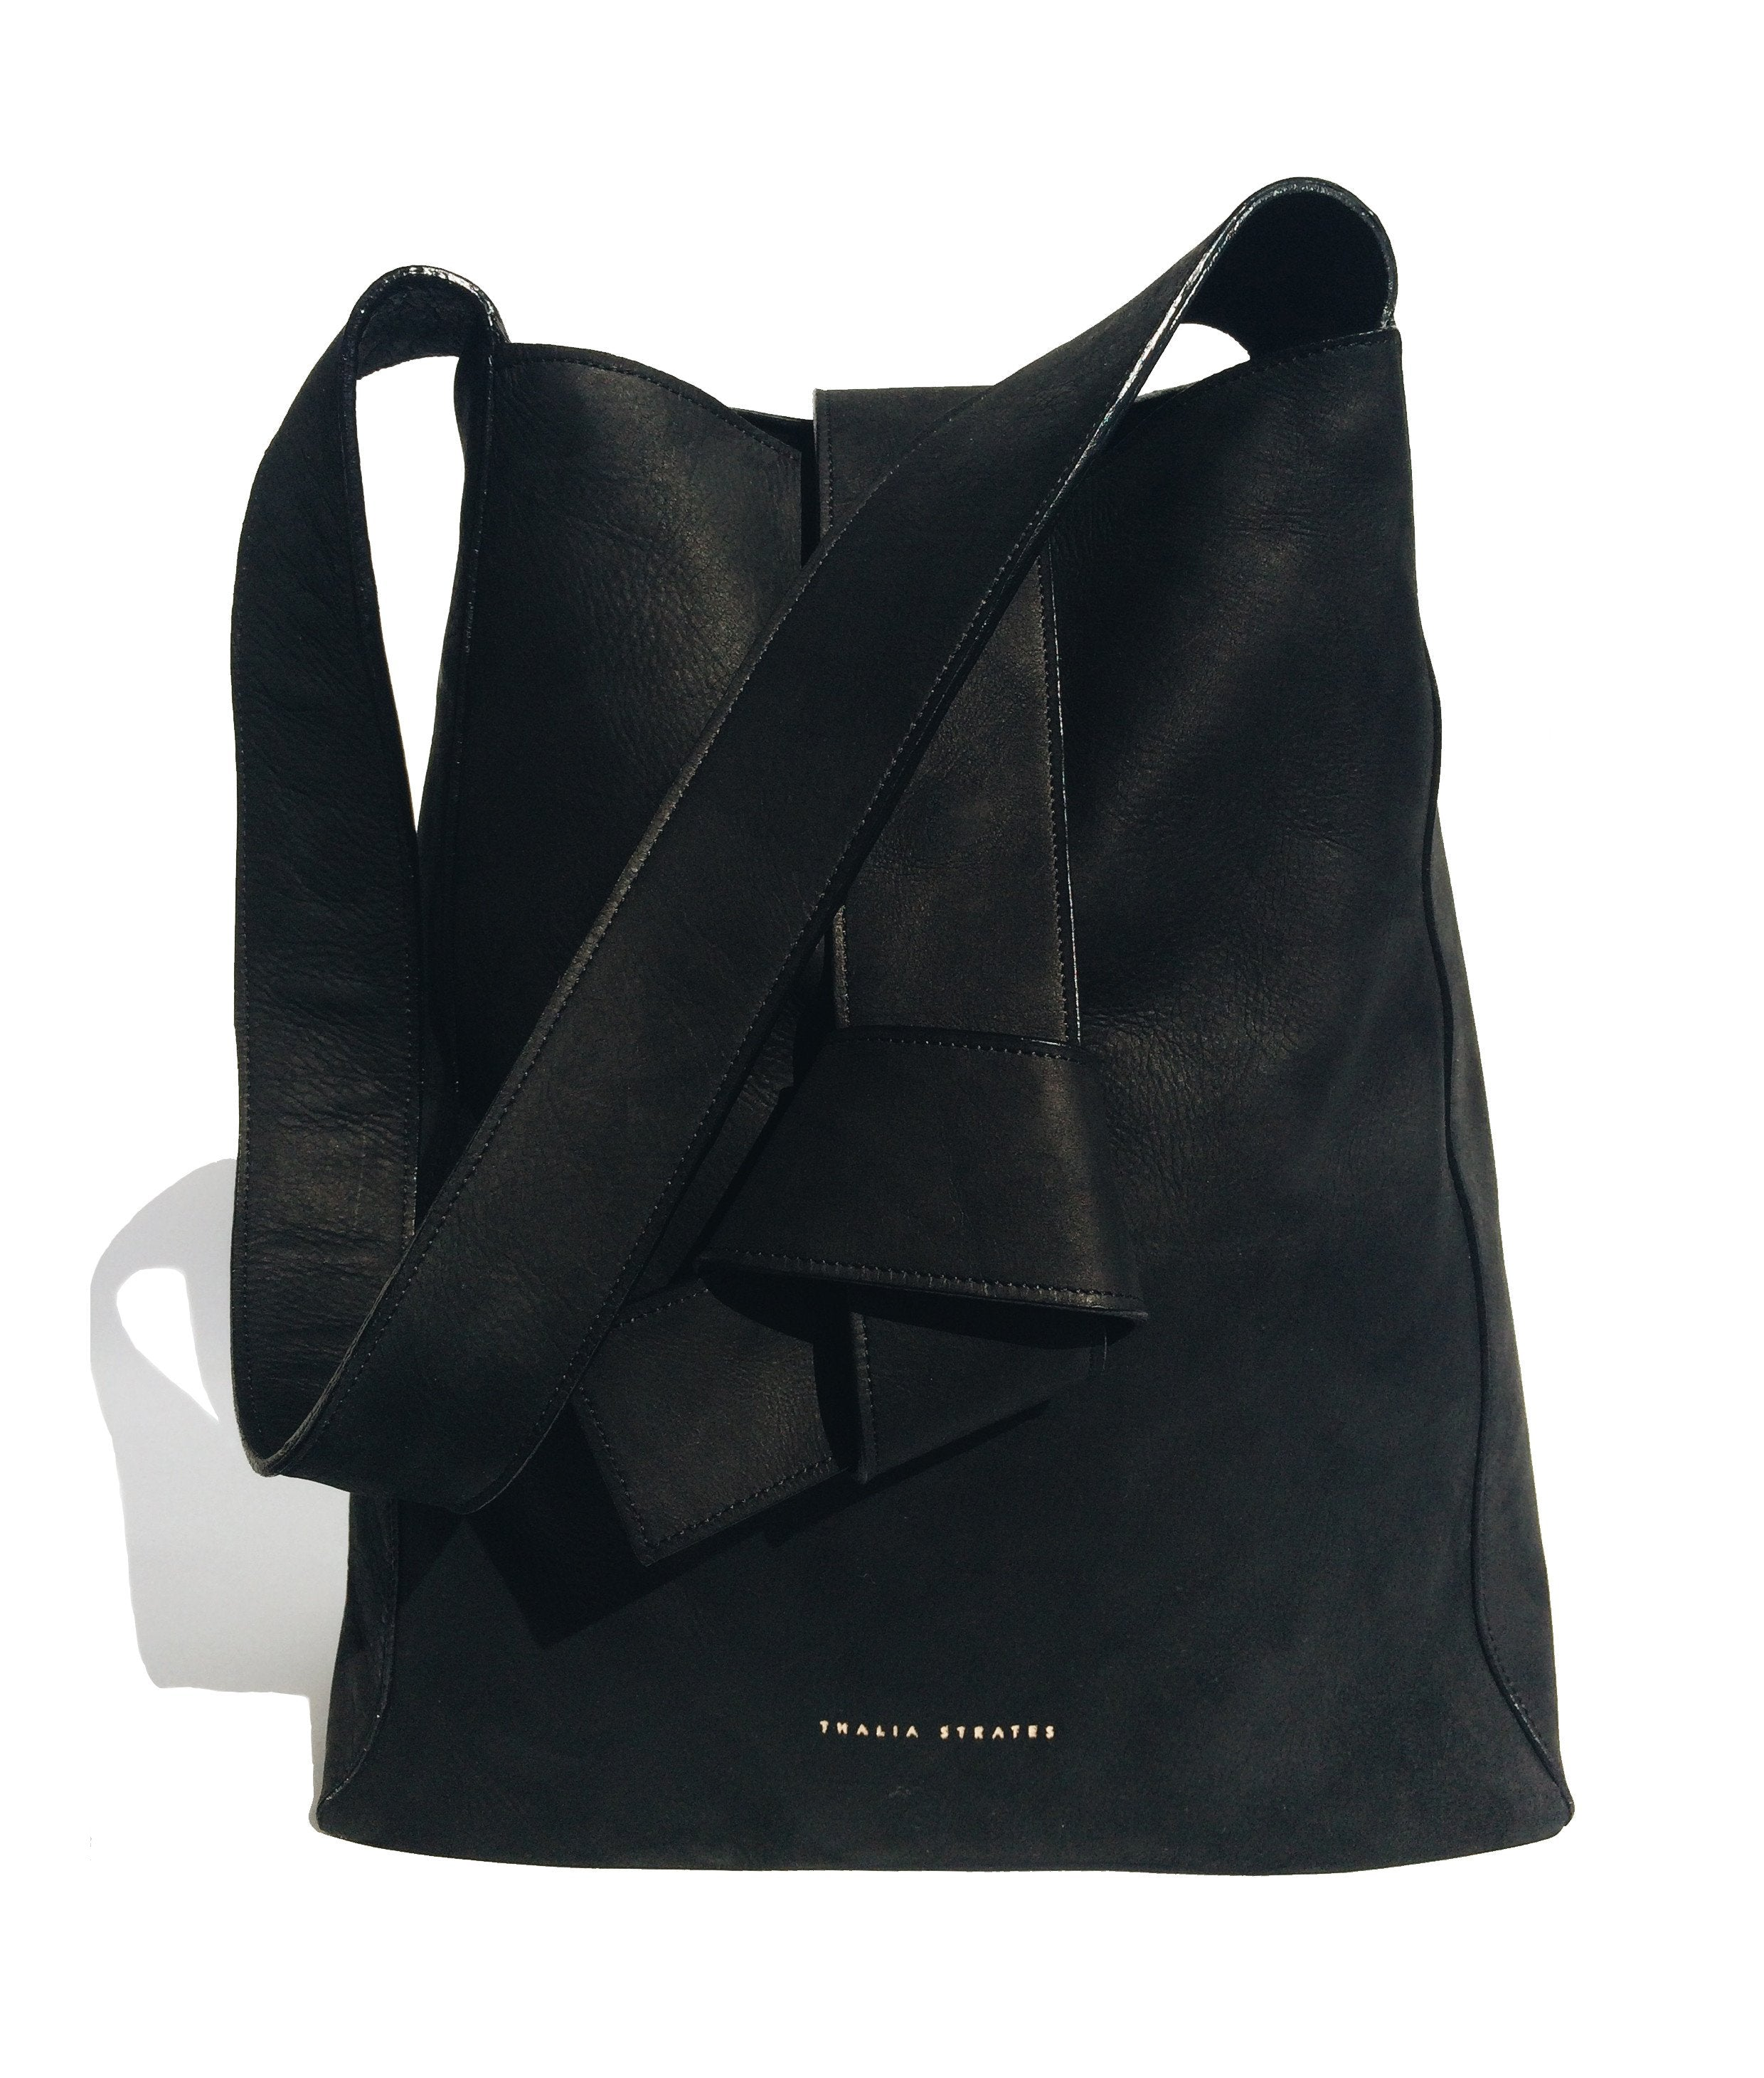 Geneva Leather Bag - Black